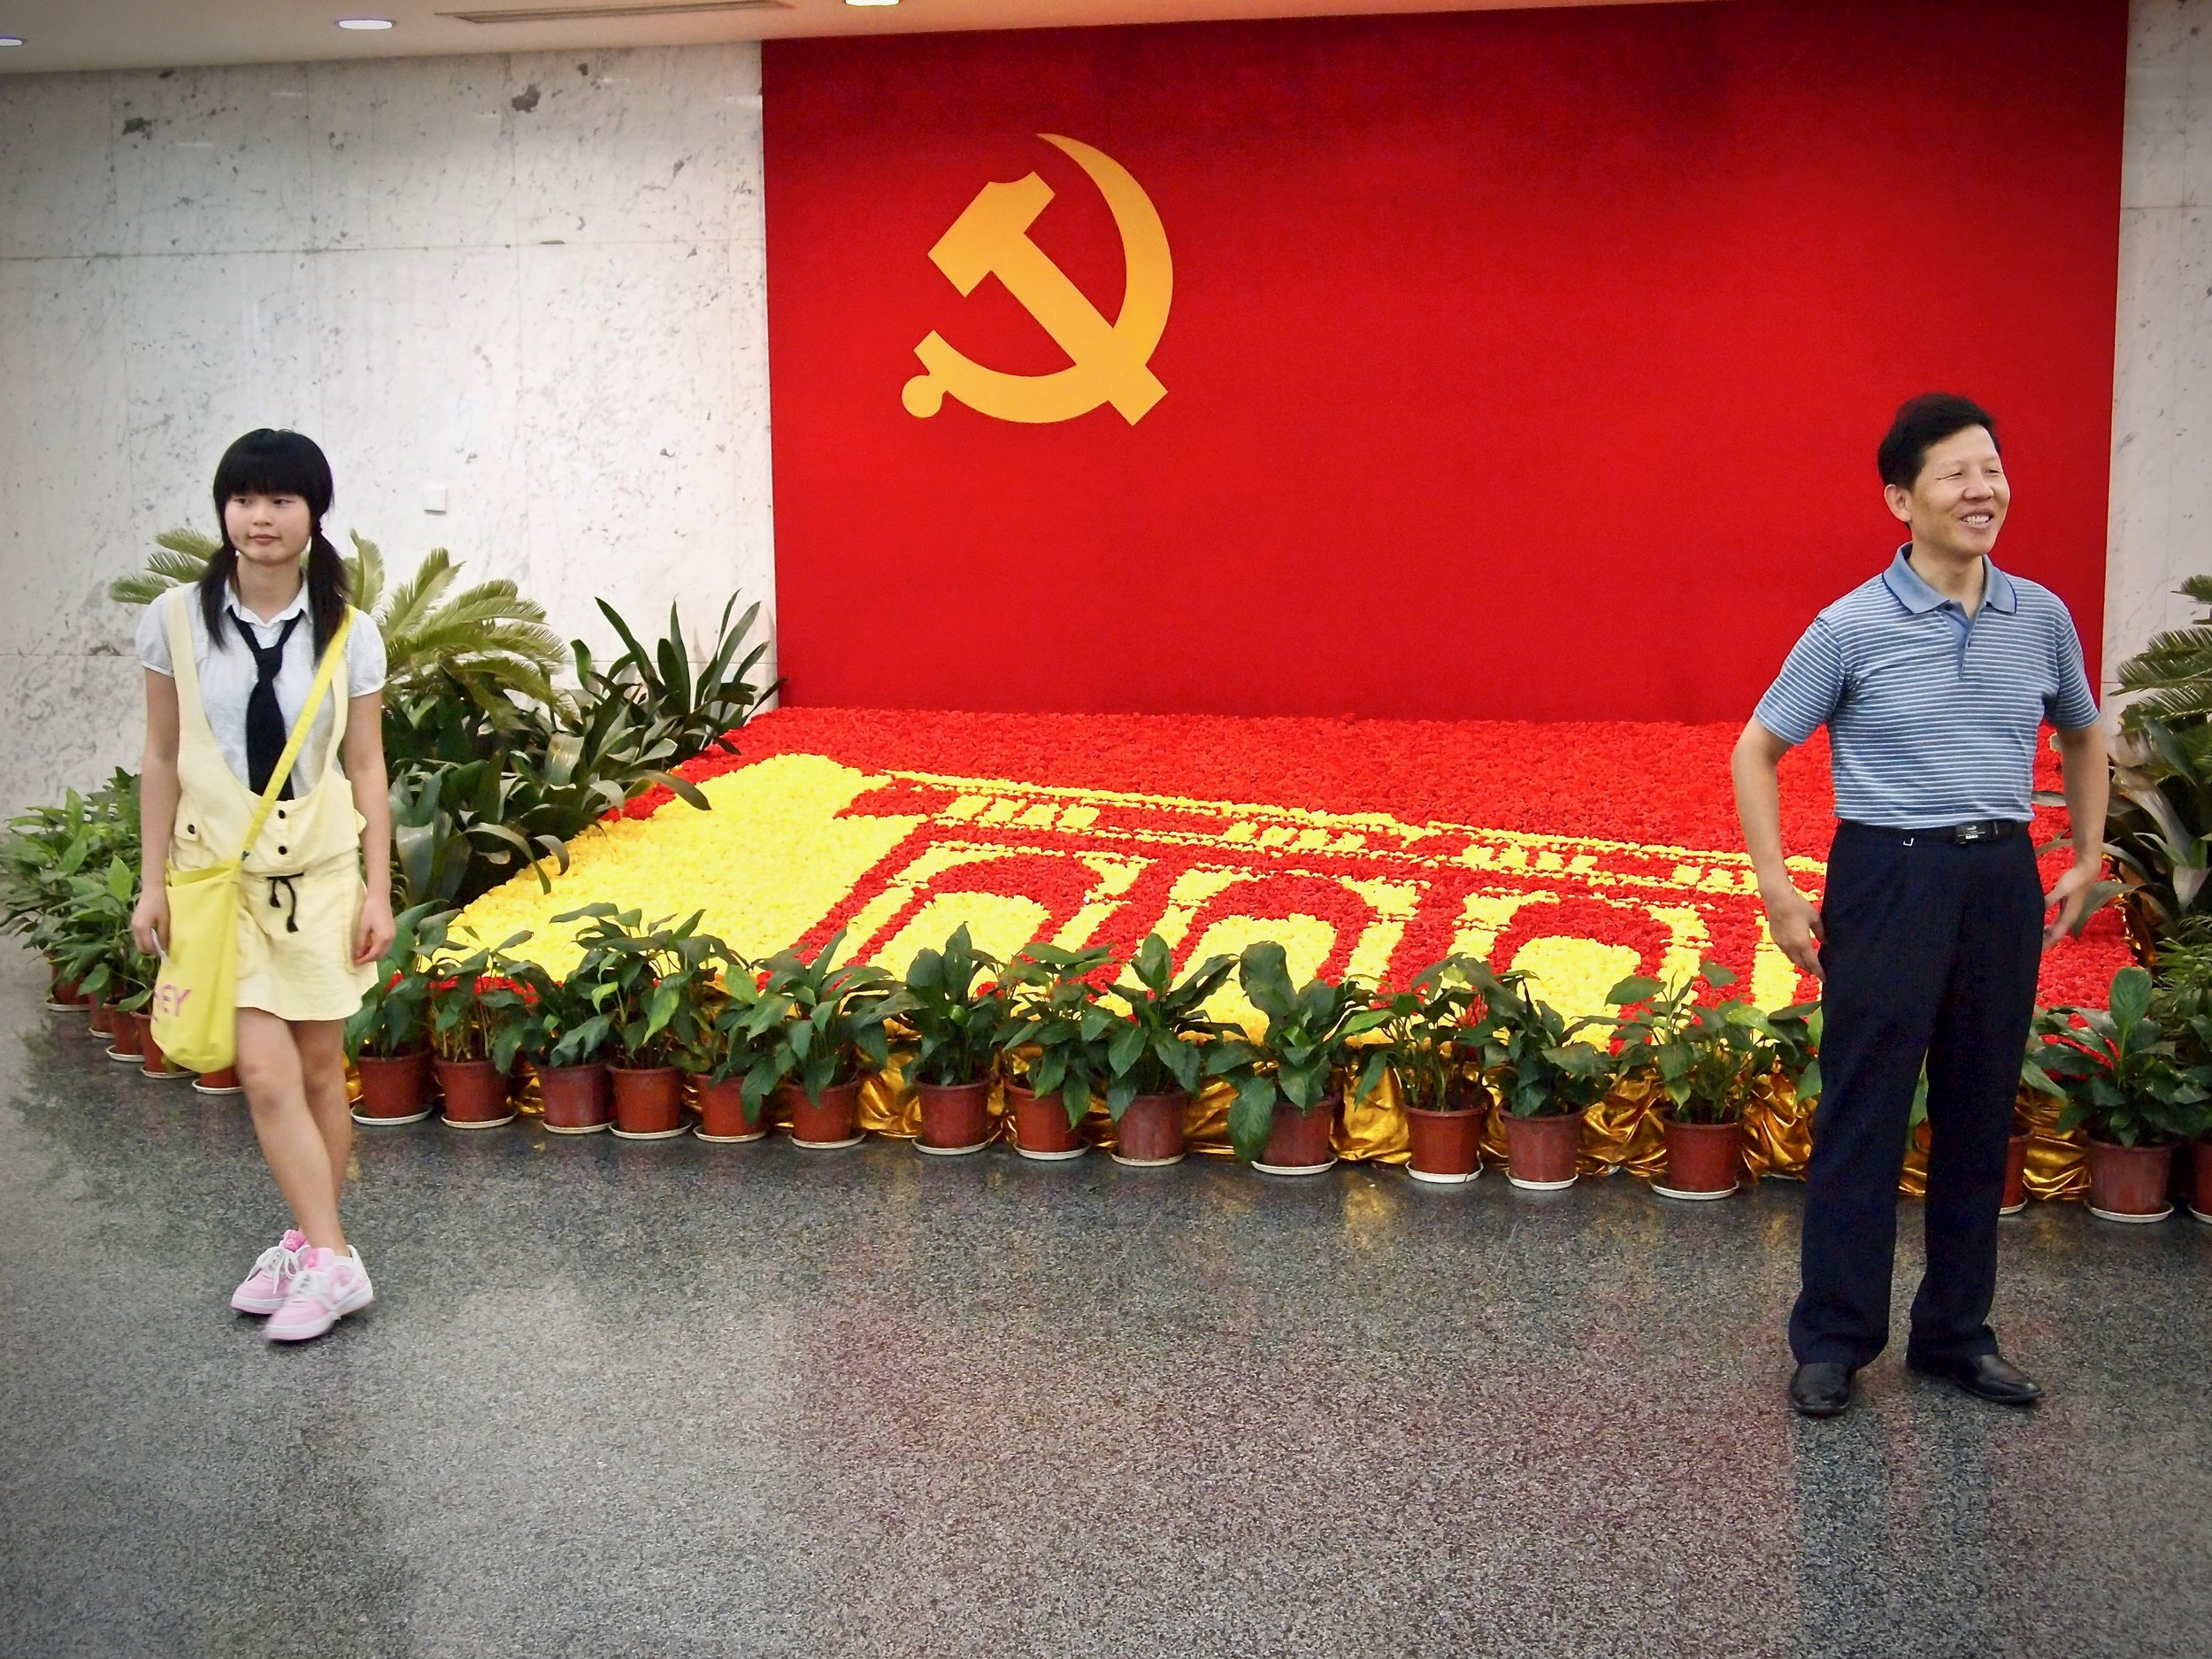 Tourists at the site of the First Congress of the Communist Party of China, in Shanghai. Photo: (C) Remko Tanis